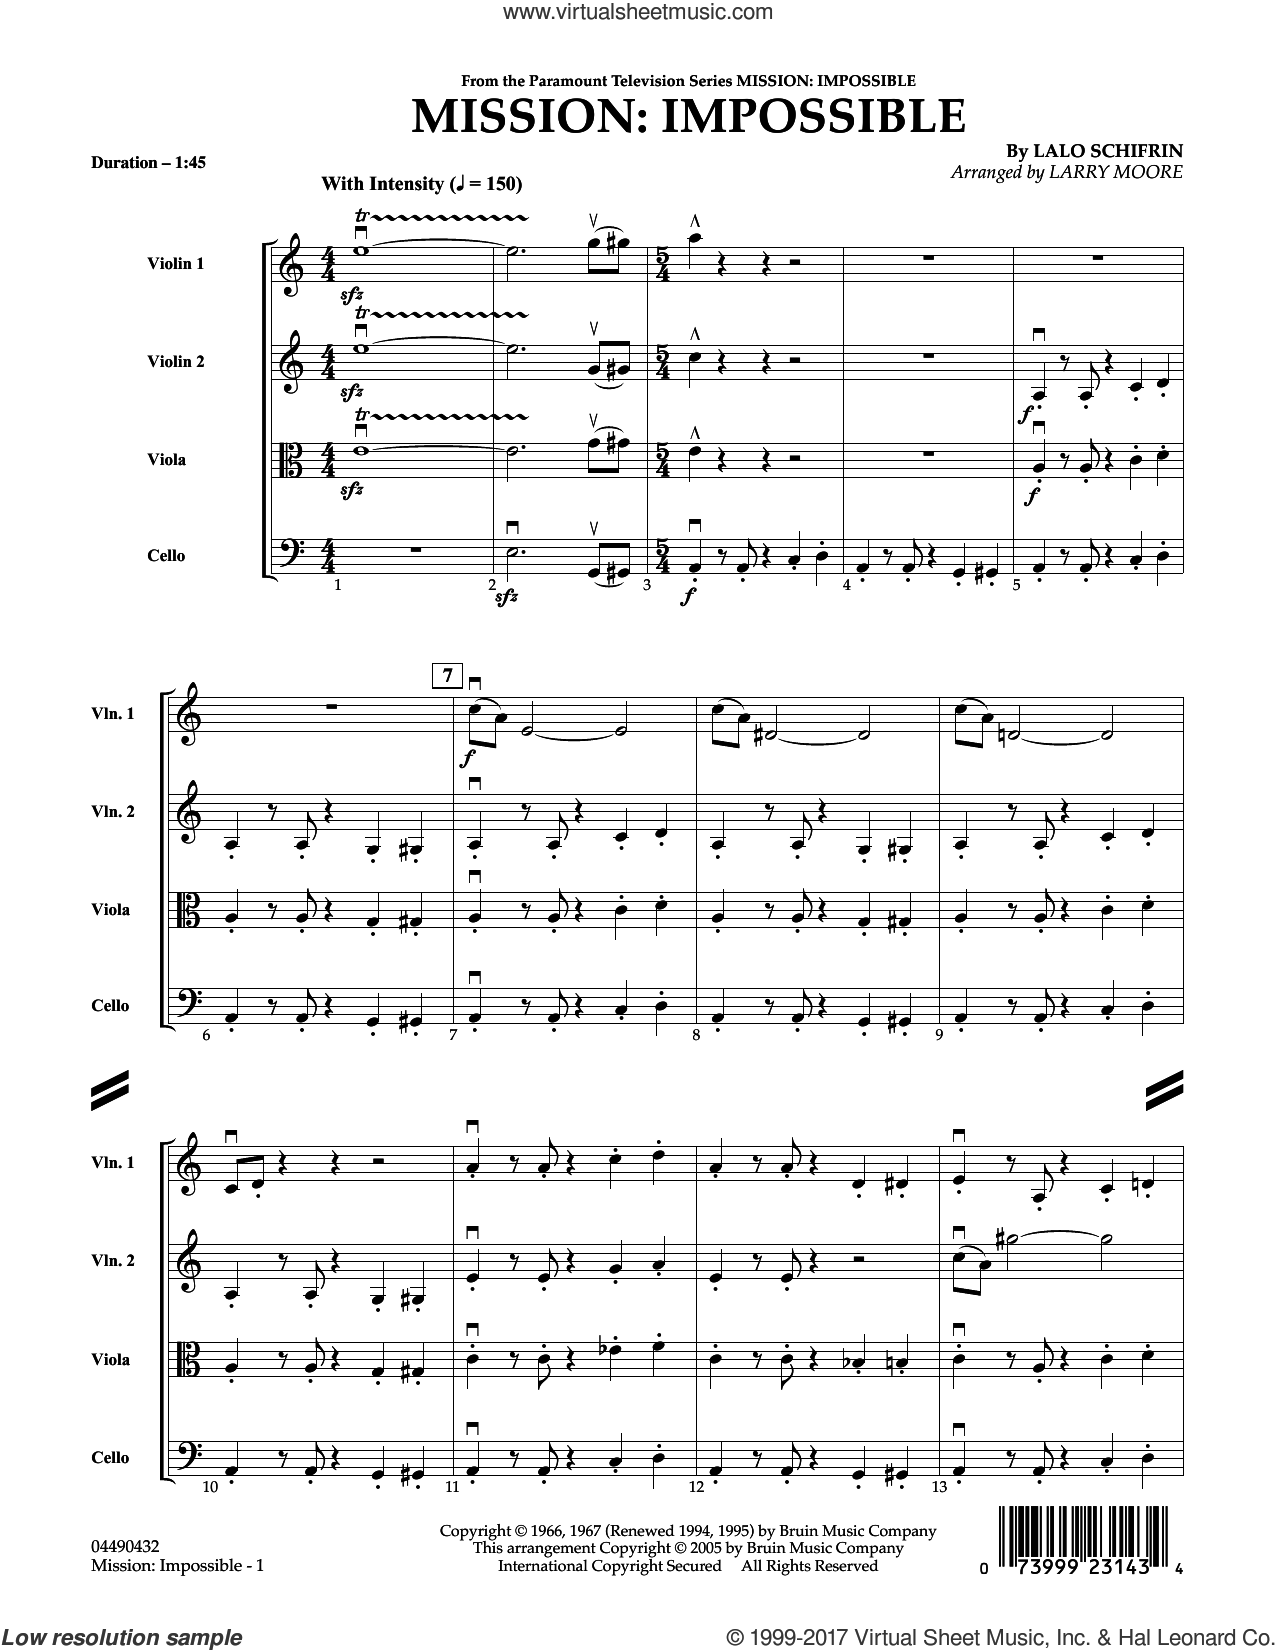 Mission: Impossible Theme (COMPLETE) sheet music for string quartet (Strings) by Larry Moore, Adam Clayton and Larry Mullen and Lalo Schifrin, intermediate orchestra